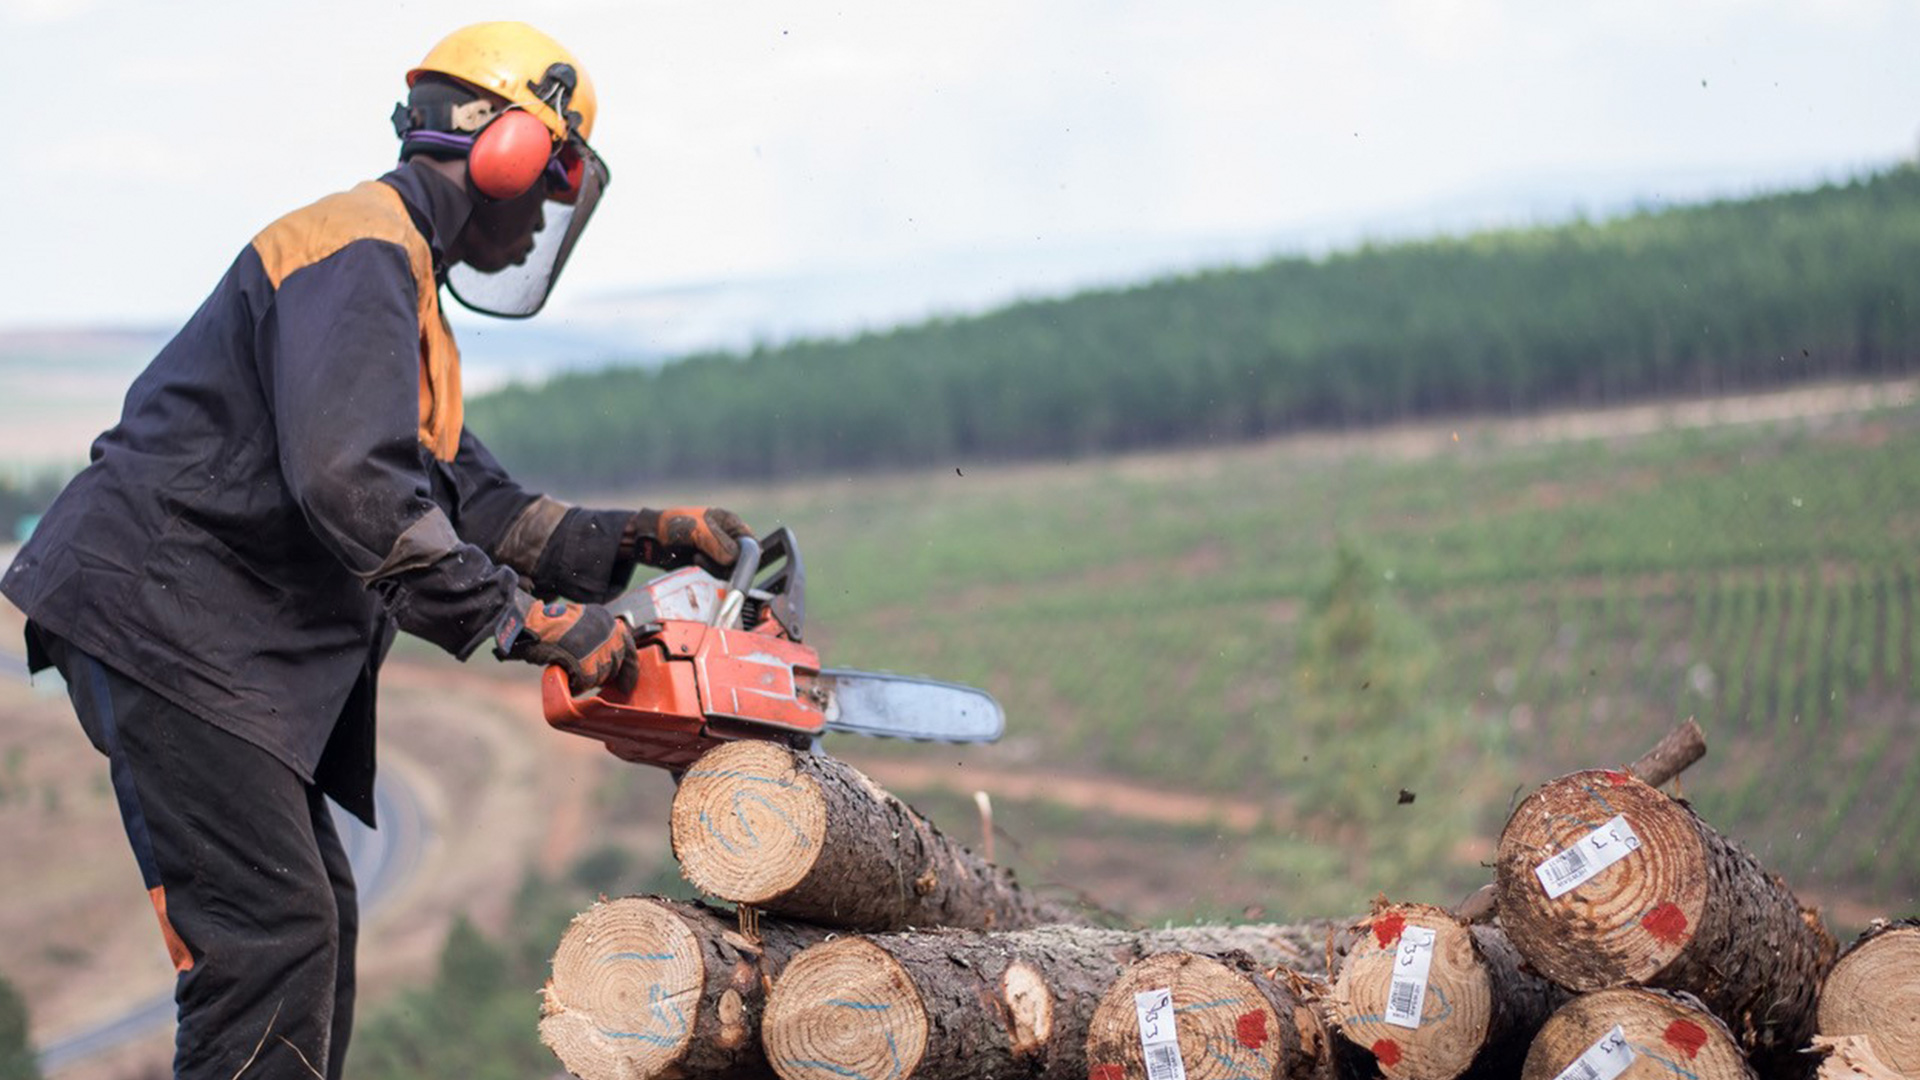 PAMSA-FW South African Forestry Sector Makes Chainsaw Training Safer With Virtual Reality1